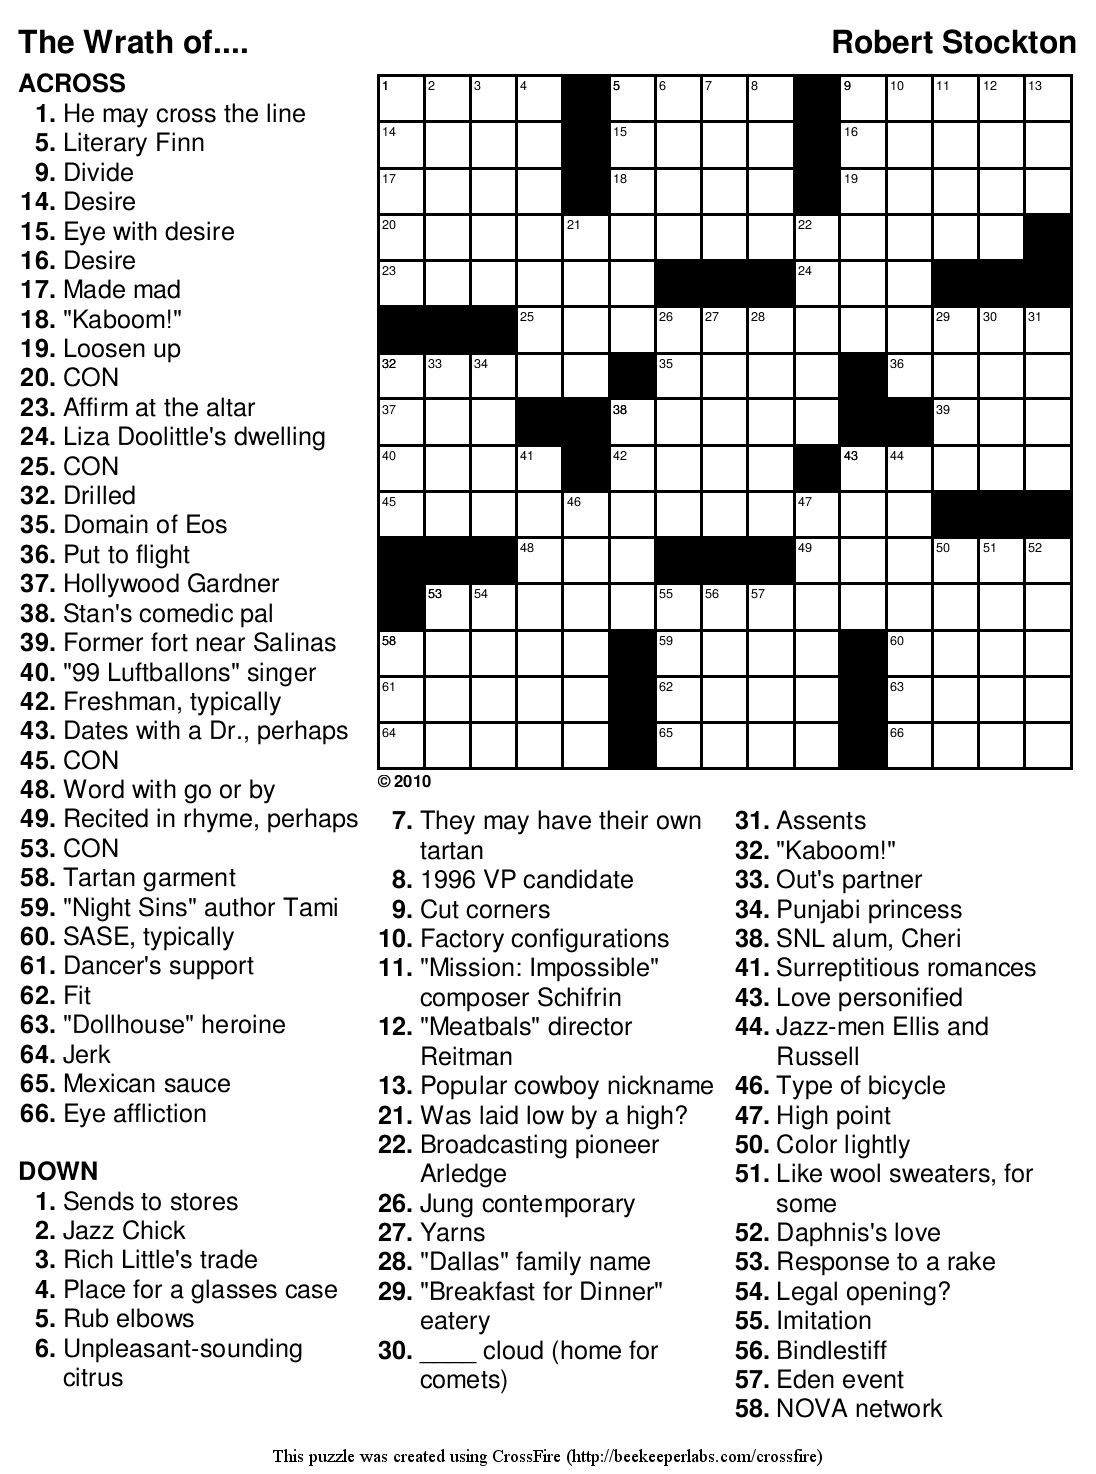 Marvelous Crossword Puzzles Easy Printable Free Org | Chas's Board - Crossword Puzzle Maker Free Printable No Download